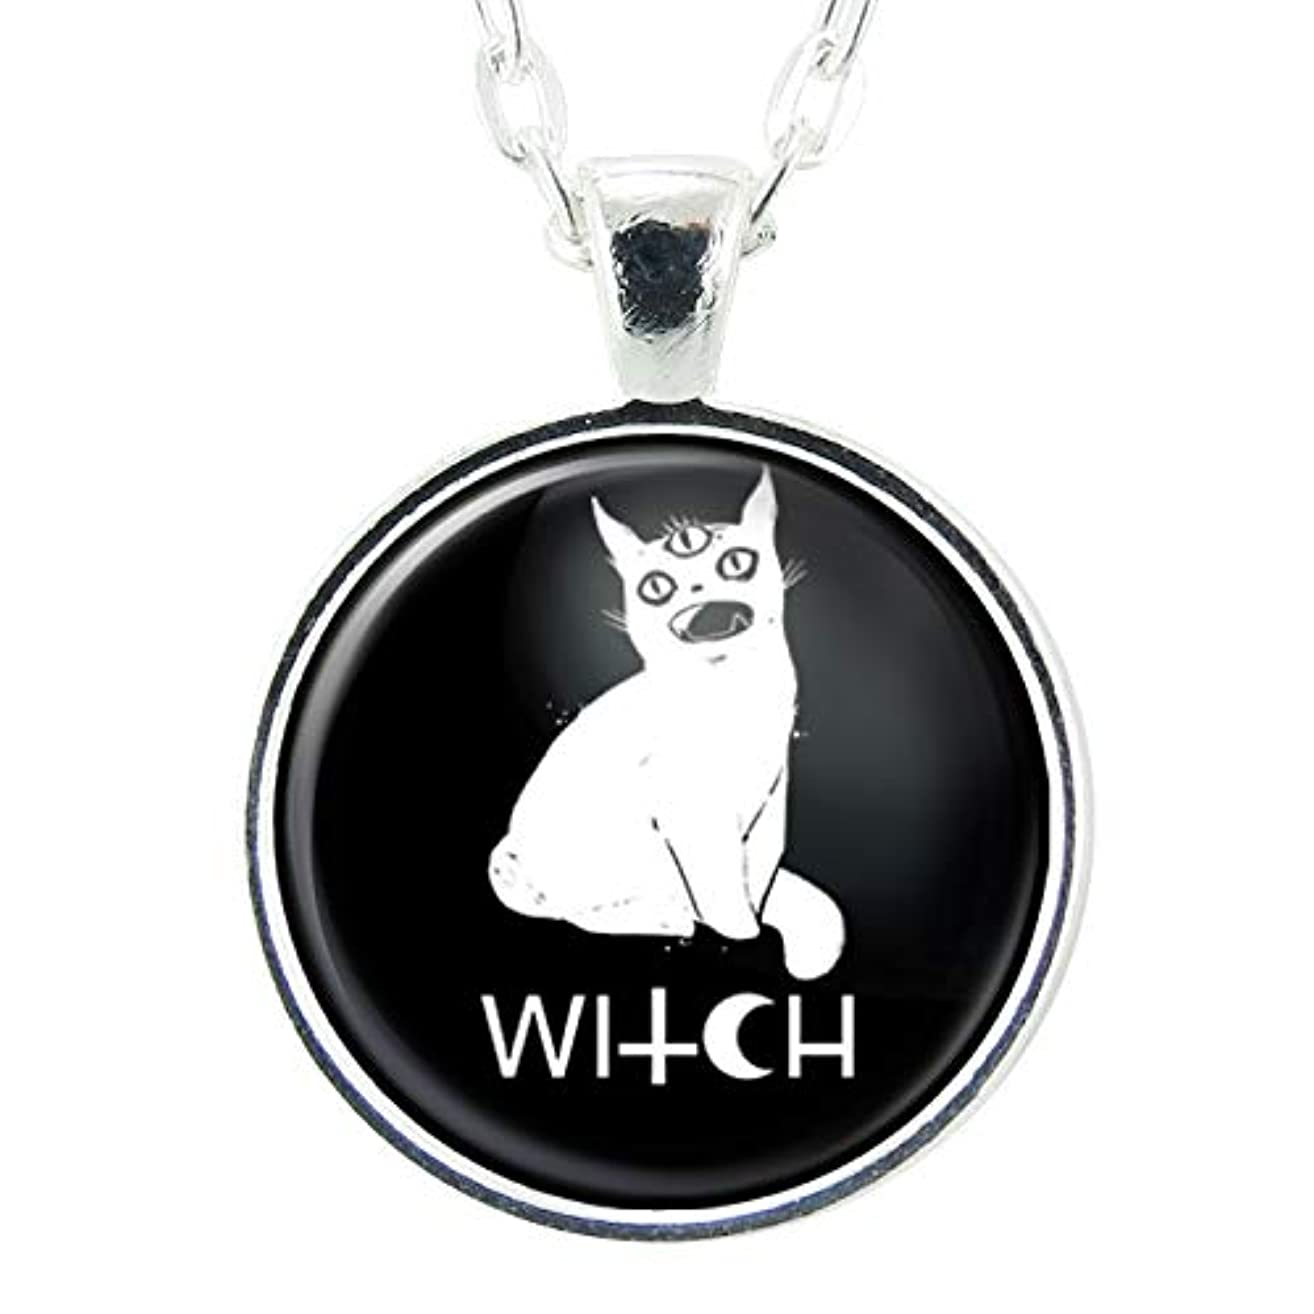 Black Cat Witch Handmade Art Pendant, Black Charm On Necklace Chain